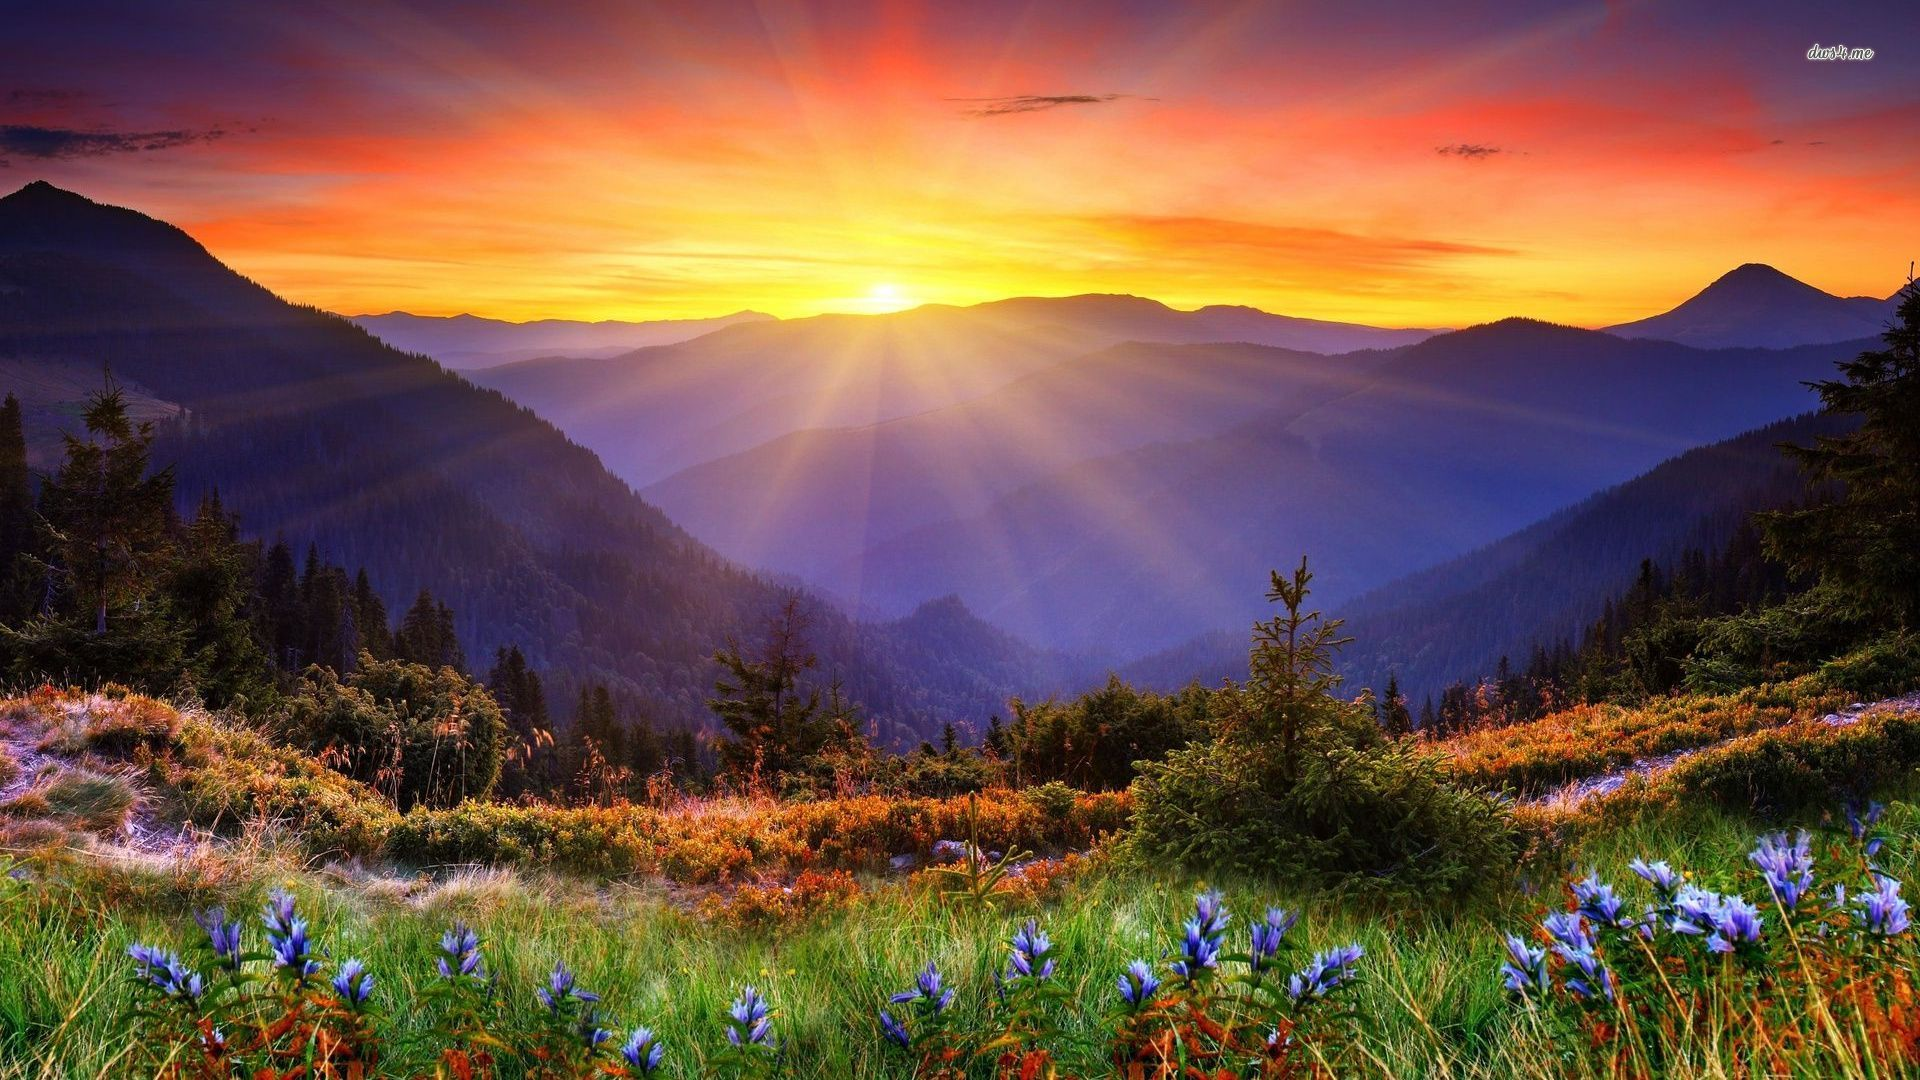 Image for Mountain Sunrise Download Wallpaper | Favorite ...